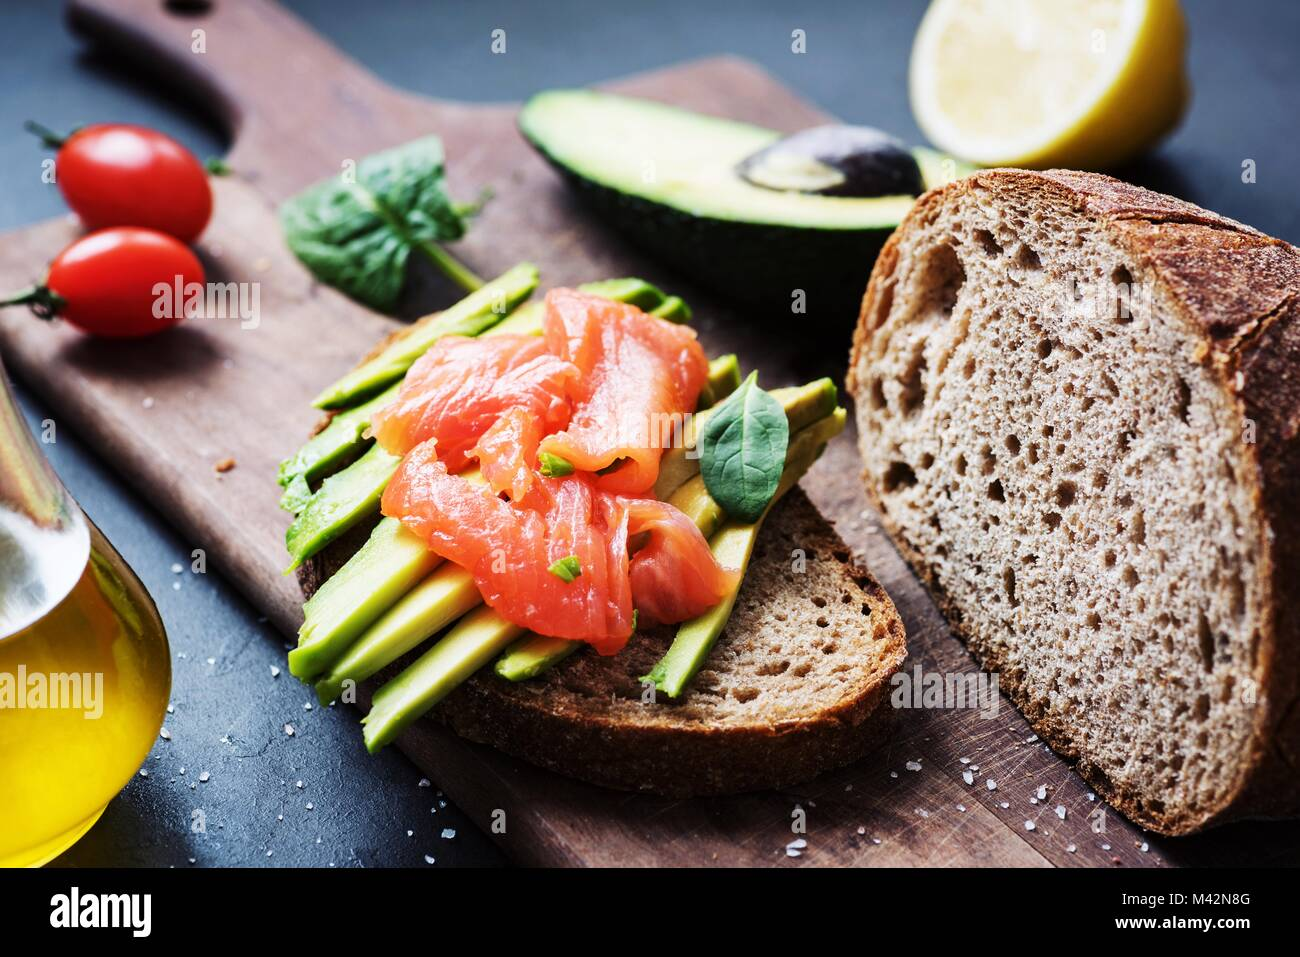 Rye toast with avocado and smoked salmon. Healthy snack - Stock Image